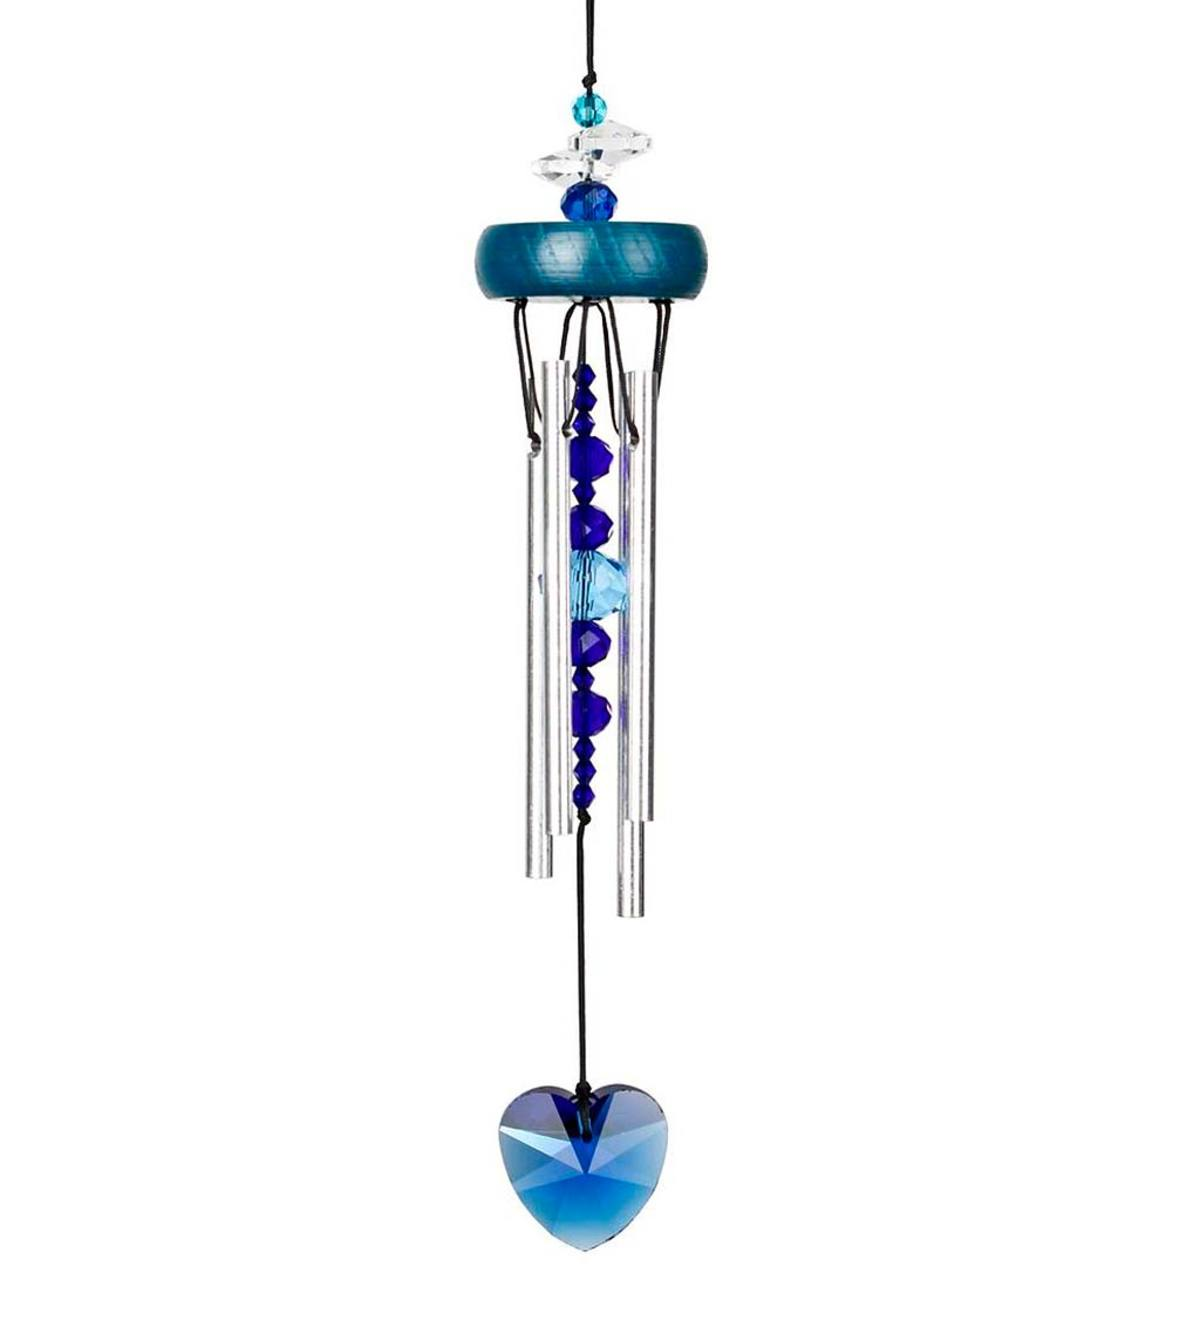 Small Wind Chime with Blue Heart and Faux Crystals